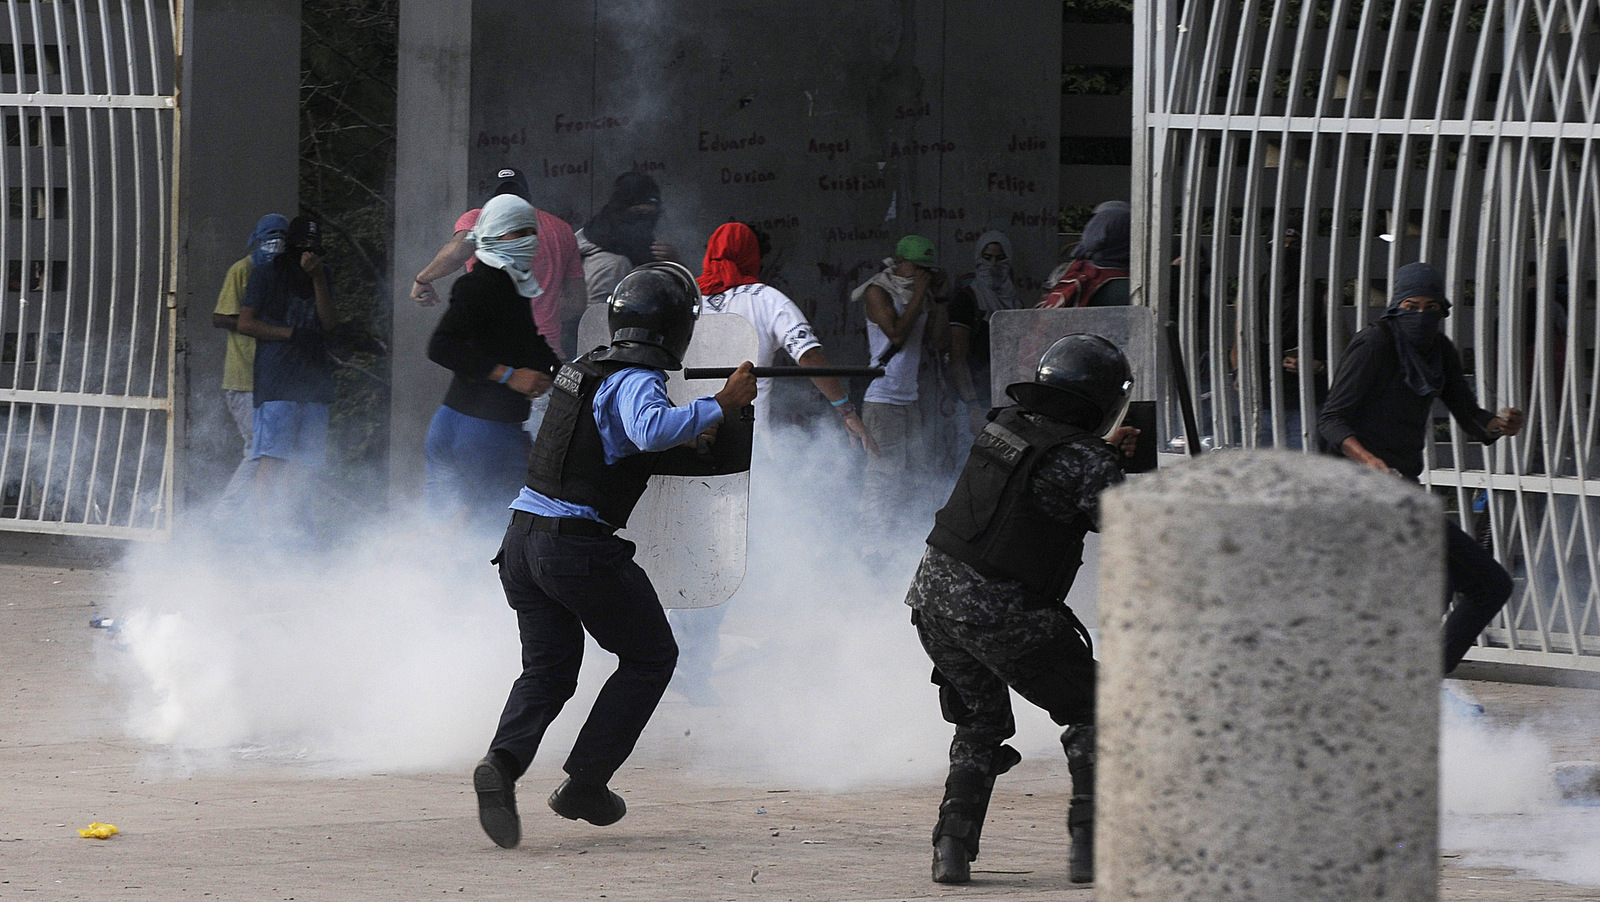 Student protesters clash with police over the president's decision to run for re-election in Tegucigalpa, Honduras, a year after a controversial Supreme Court ruling voided a longtime constitutional ban on presidential re-election, Thursday Nov. 10, 2016. (AP/Fernando Antonio)